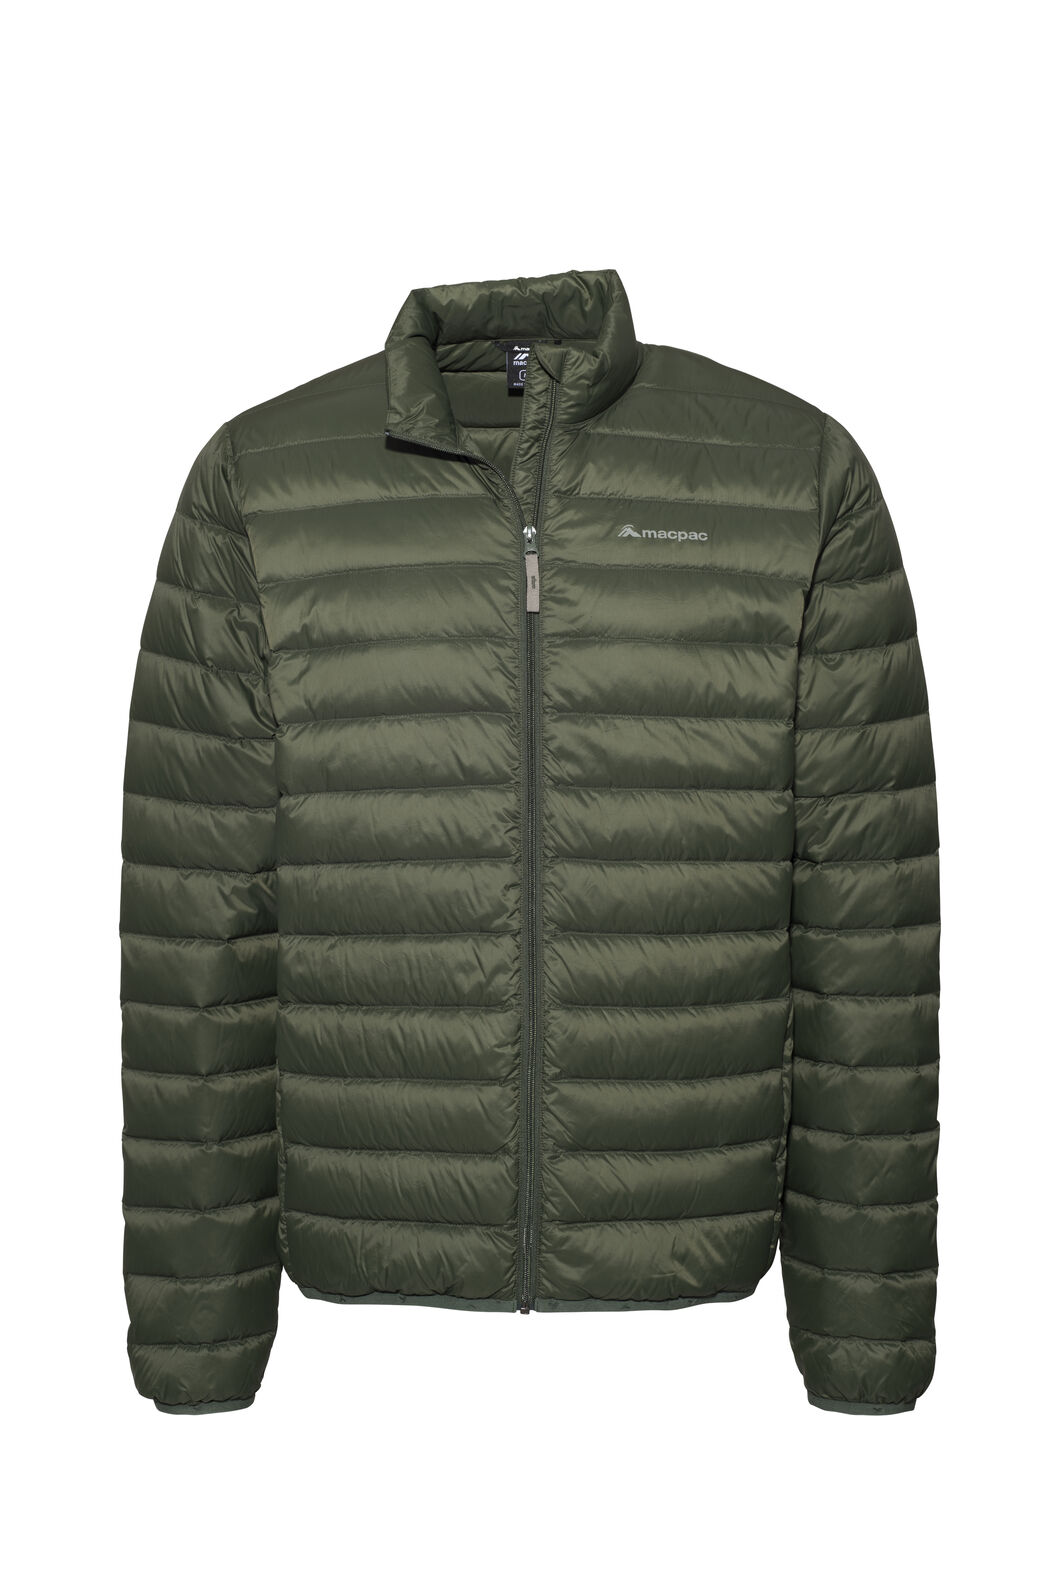 Macpac Uber Light Down Jacket - Men's, Kombu/Vetiver, hi-res